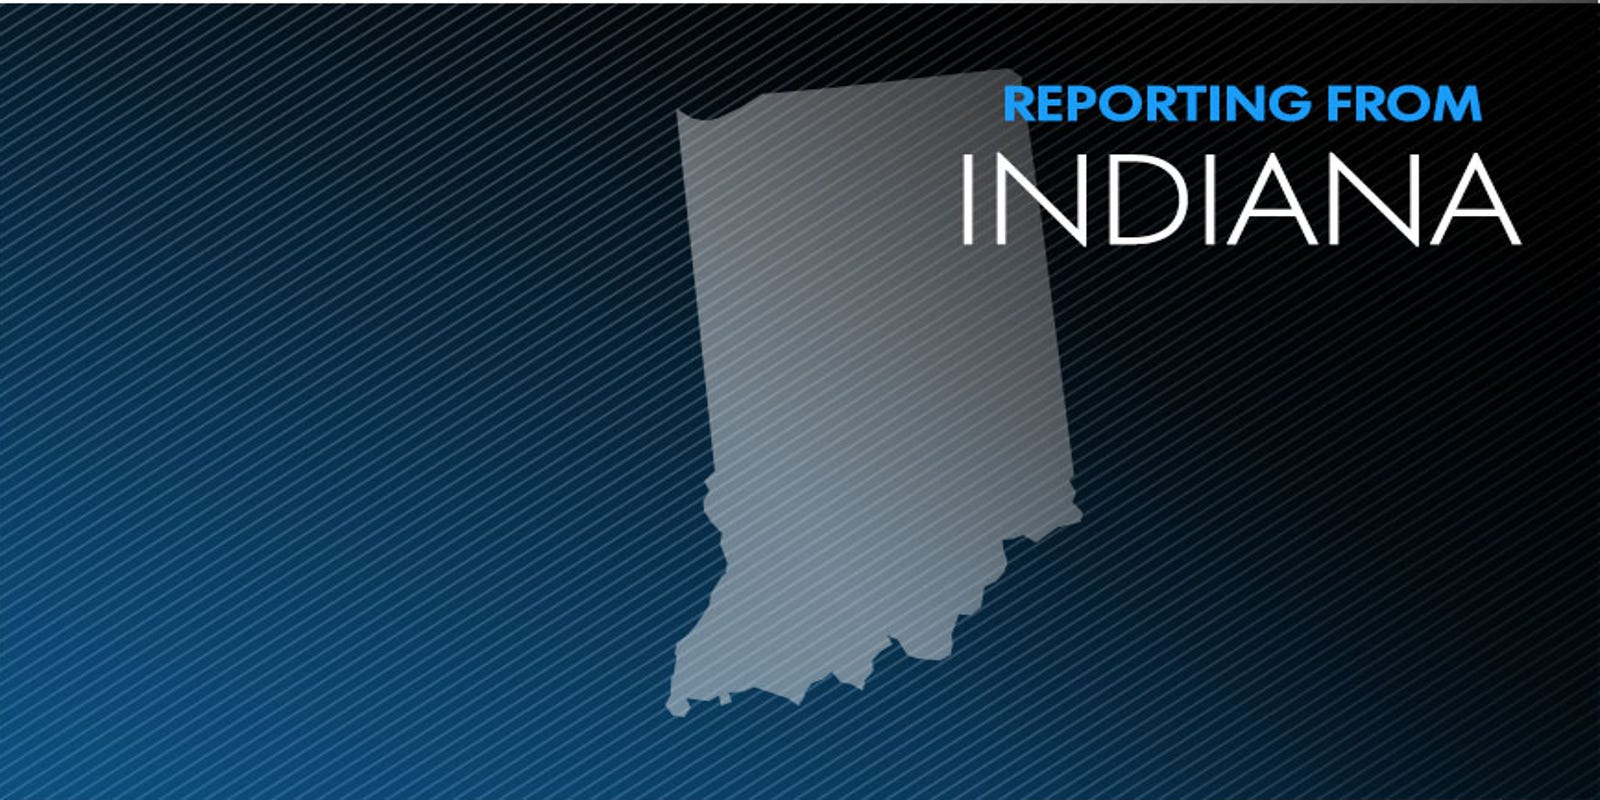 Indiana's strongest earthquake in more than a decade sends ripples into Illinois, Michigan